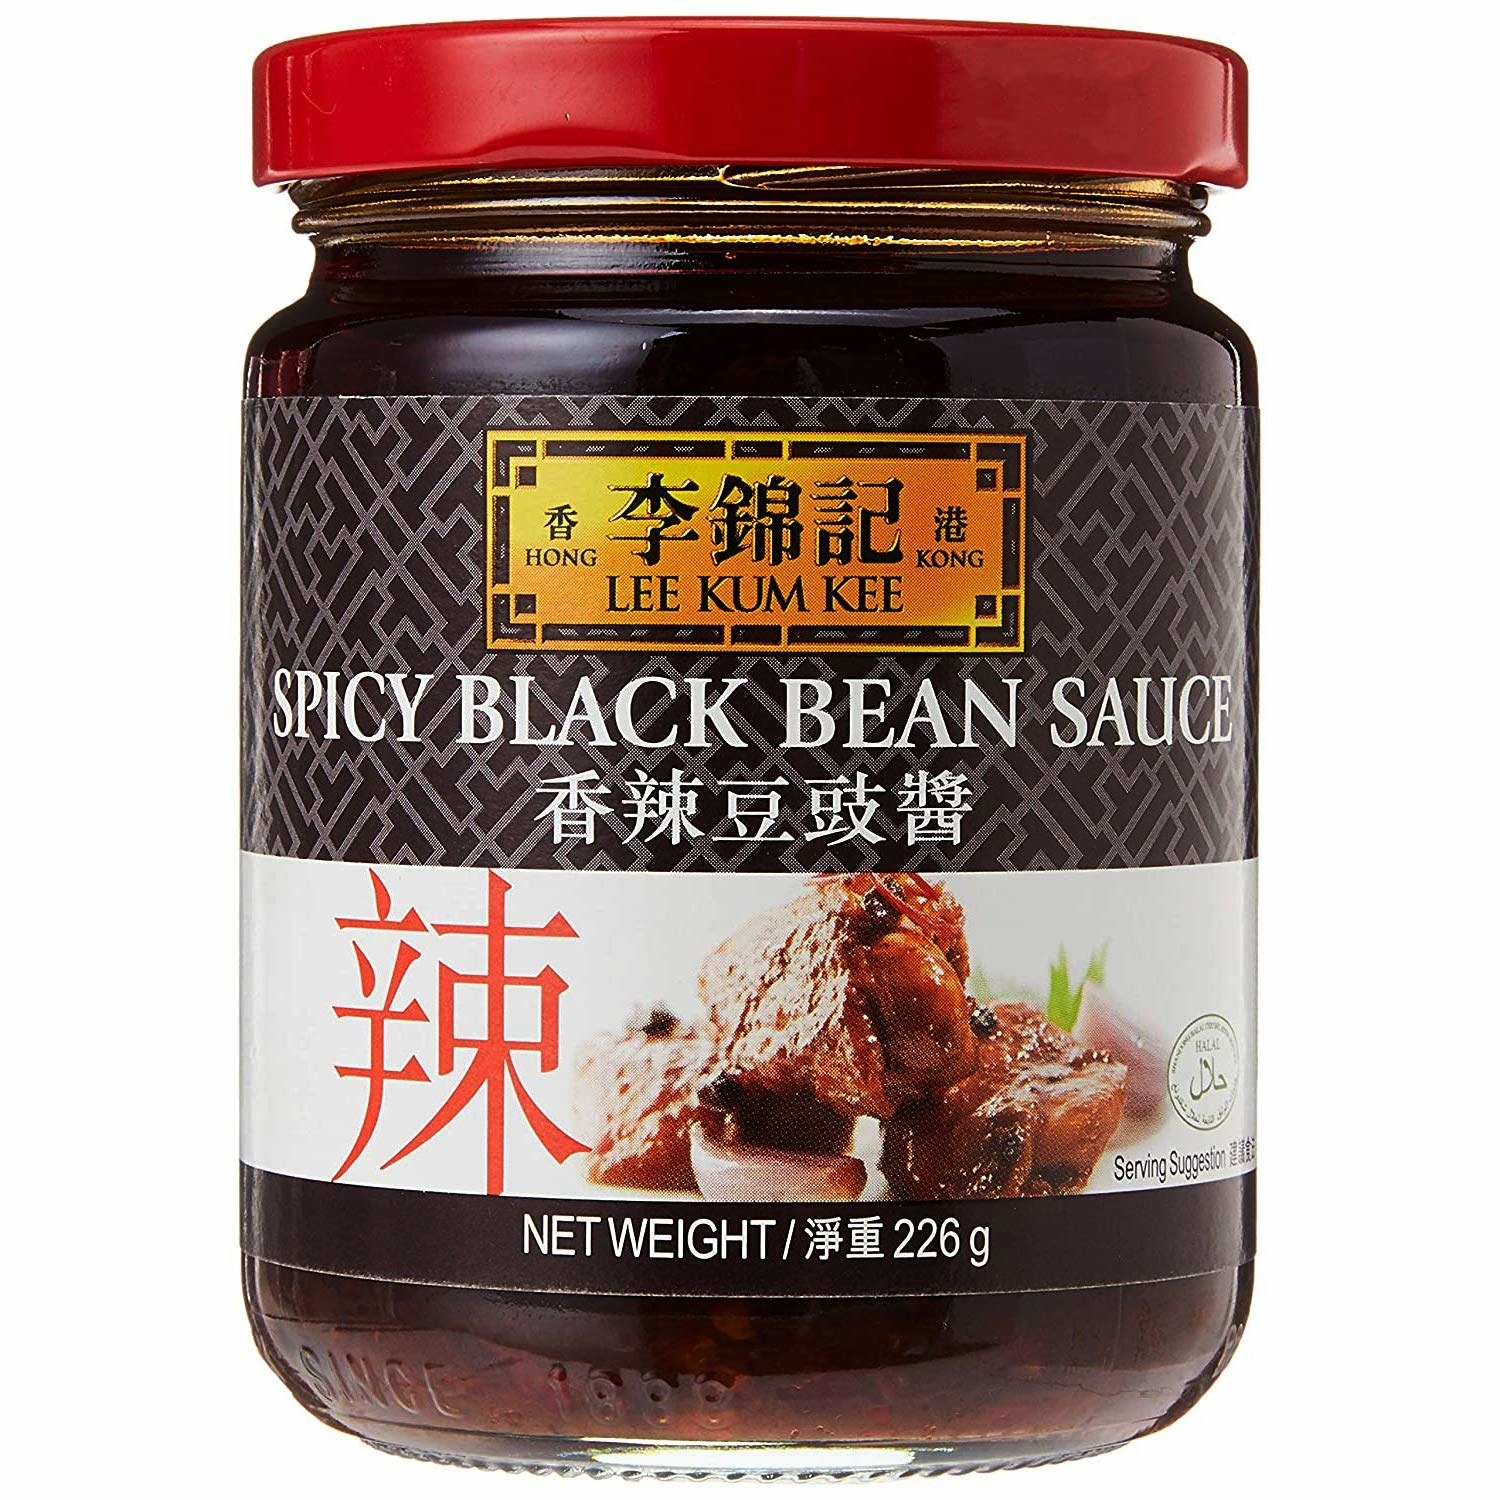 A jar or spicy black bean sauce from Lee Kum Kee.